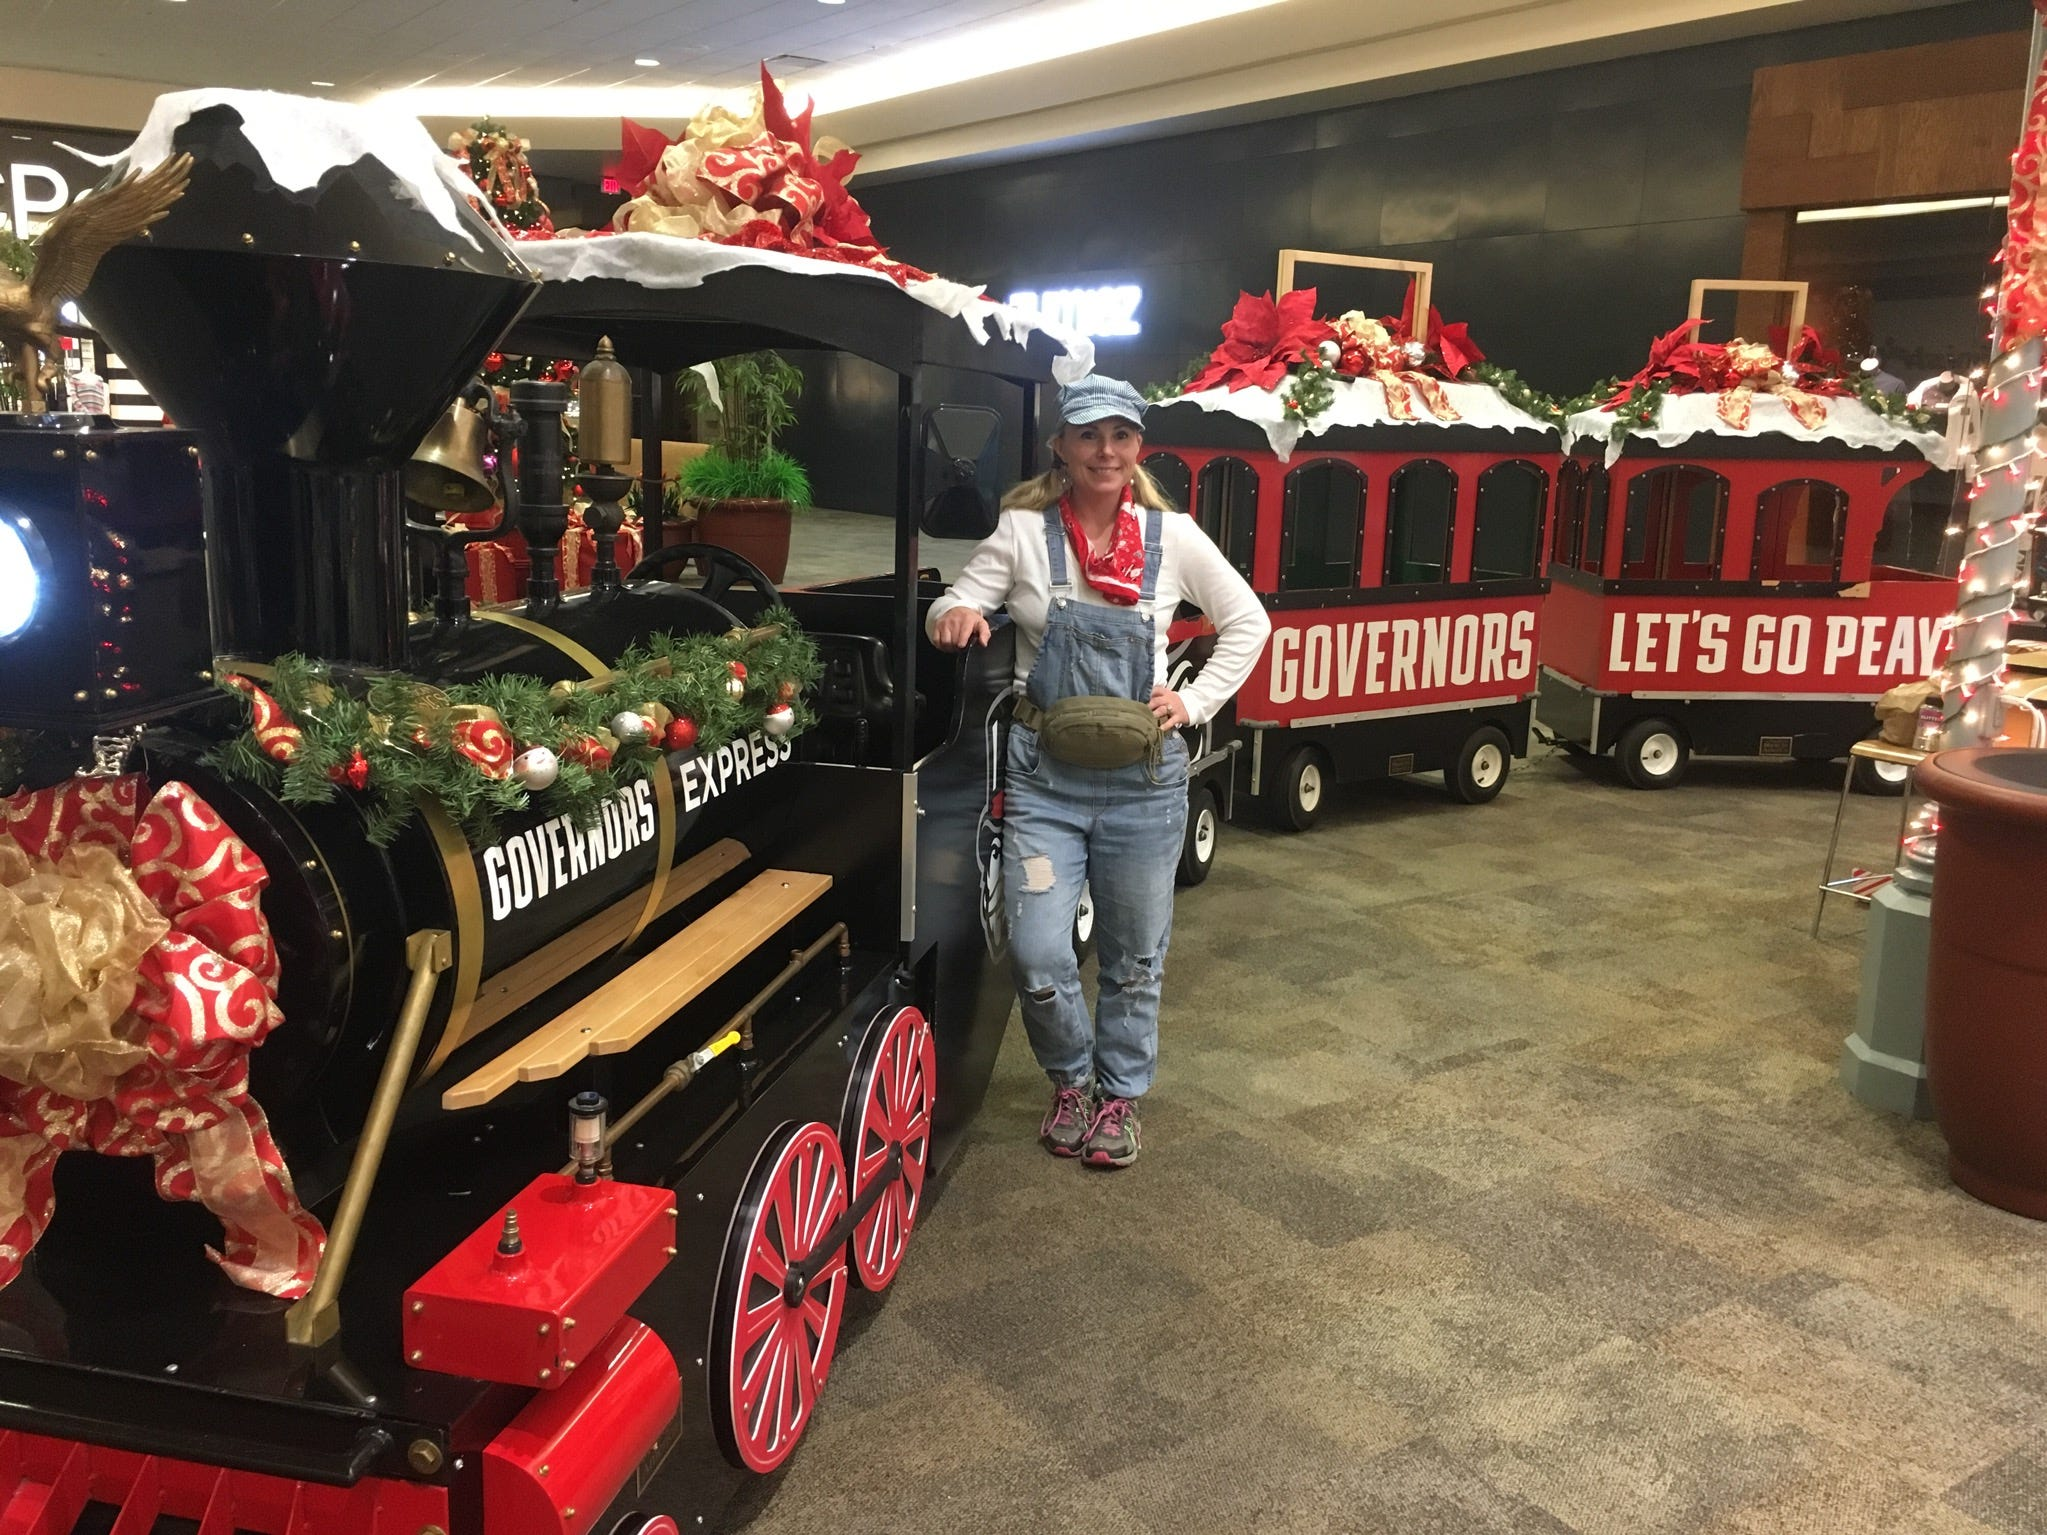 The Governor's Express, with Jennifer Menna at the wheel for the past five years, is decorated and ready for lots of Governor's Square customers.